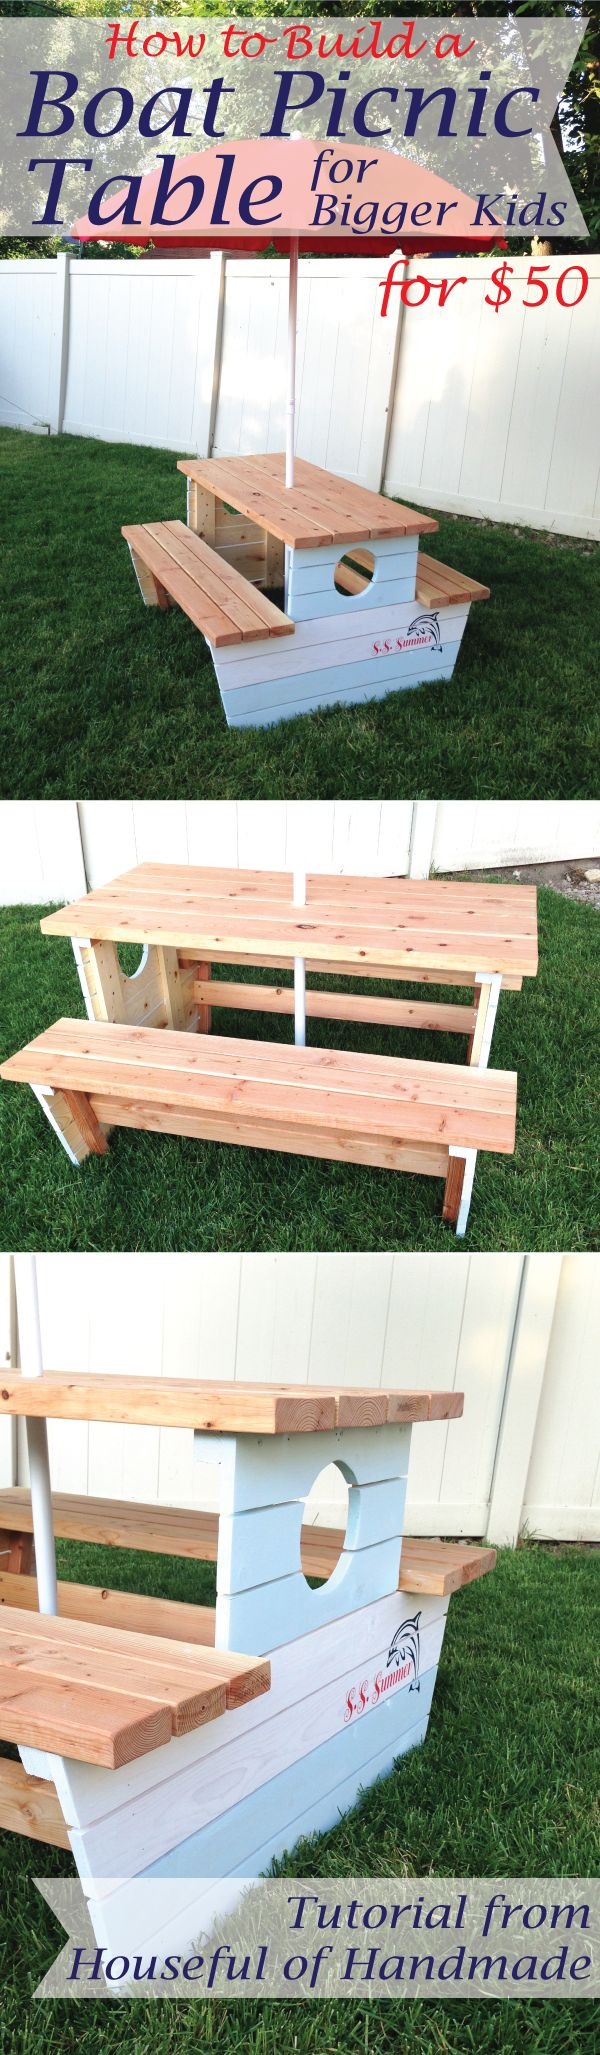 Picnic Table Plans Pirate Picnic Table Plans Octagon Picnic Table - How to build a nautical picnic table for bigger kids kids picnic table plansdiy